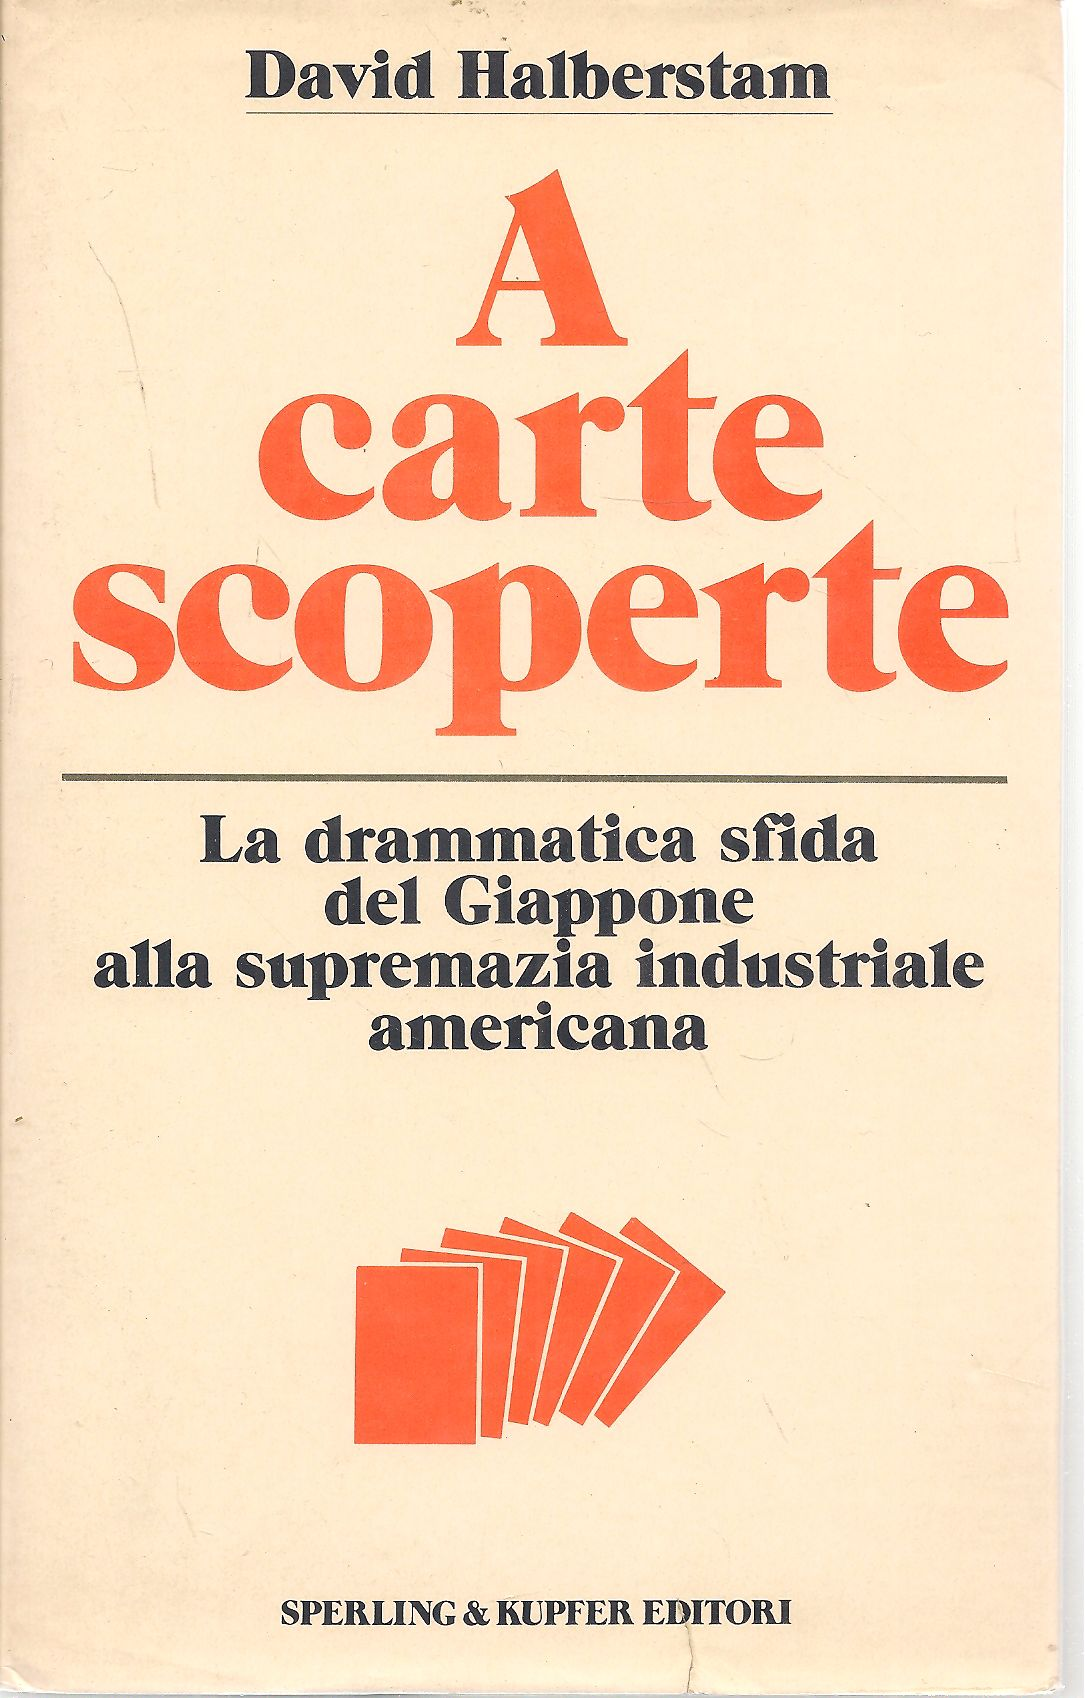 A CARTE SCOPERTE - DAVID HALBERSTAM